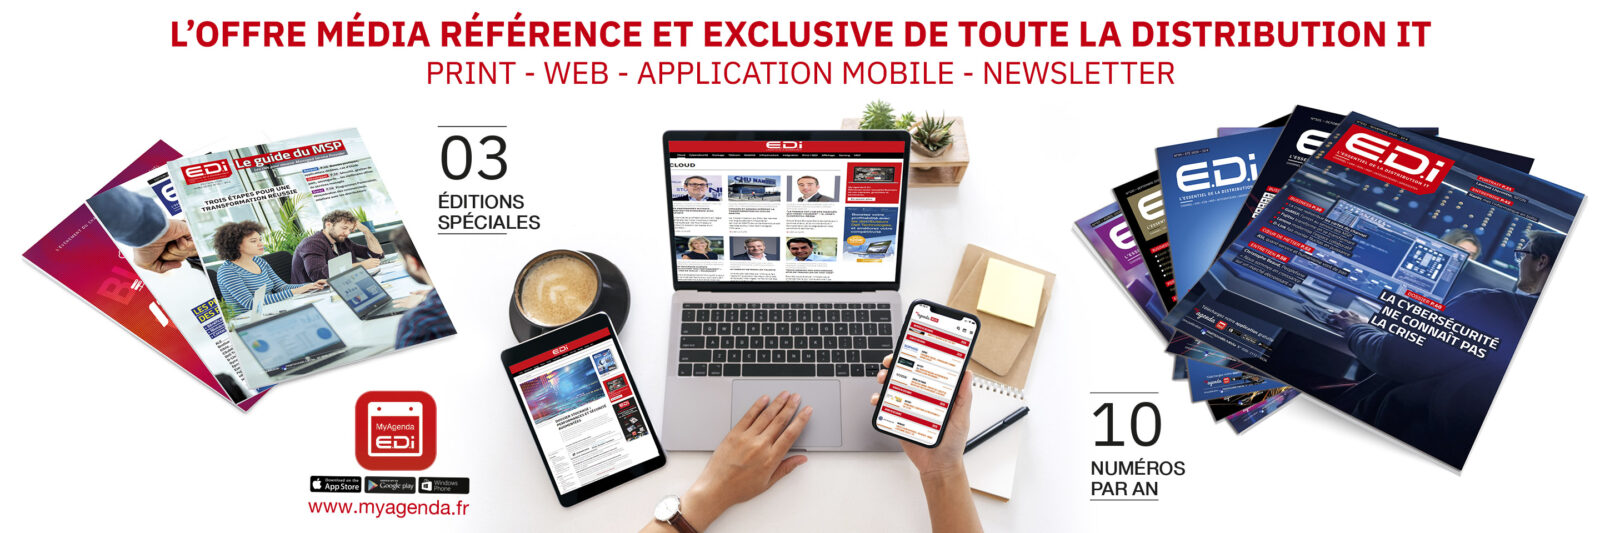 Magazine EDI : l'offre media de référence - print - web - application mobile - newsletter